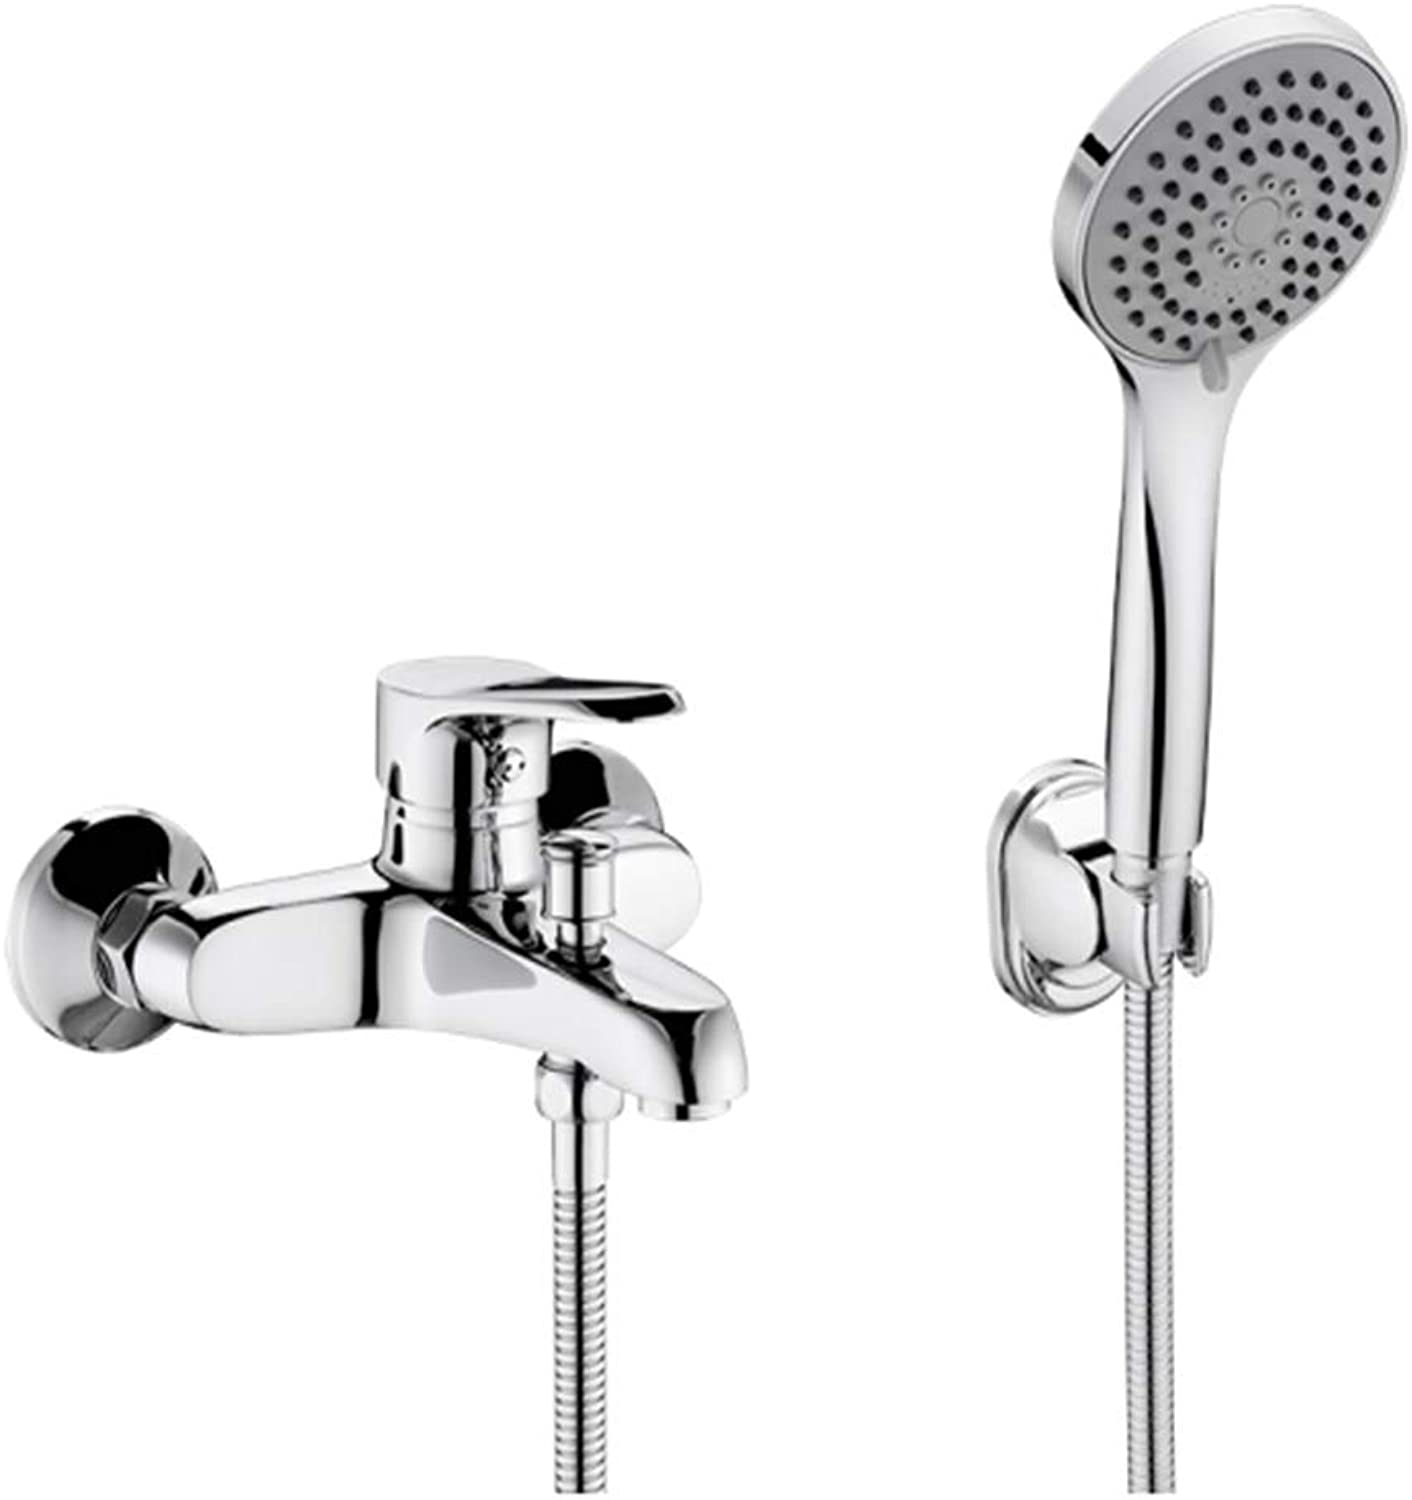 Kitchen Taps Faucet Modern Kitchen Sink Taps Stainless Steelbathroom Shower Shower Flower Sprinkle Copper Bath Faucet Cold and Hot Water Faucet